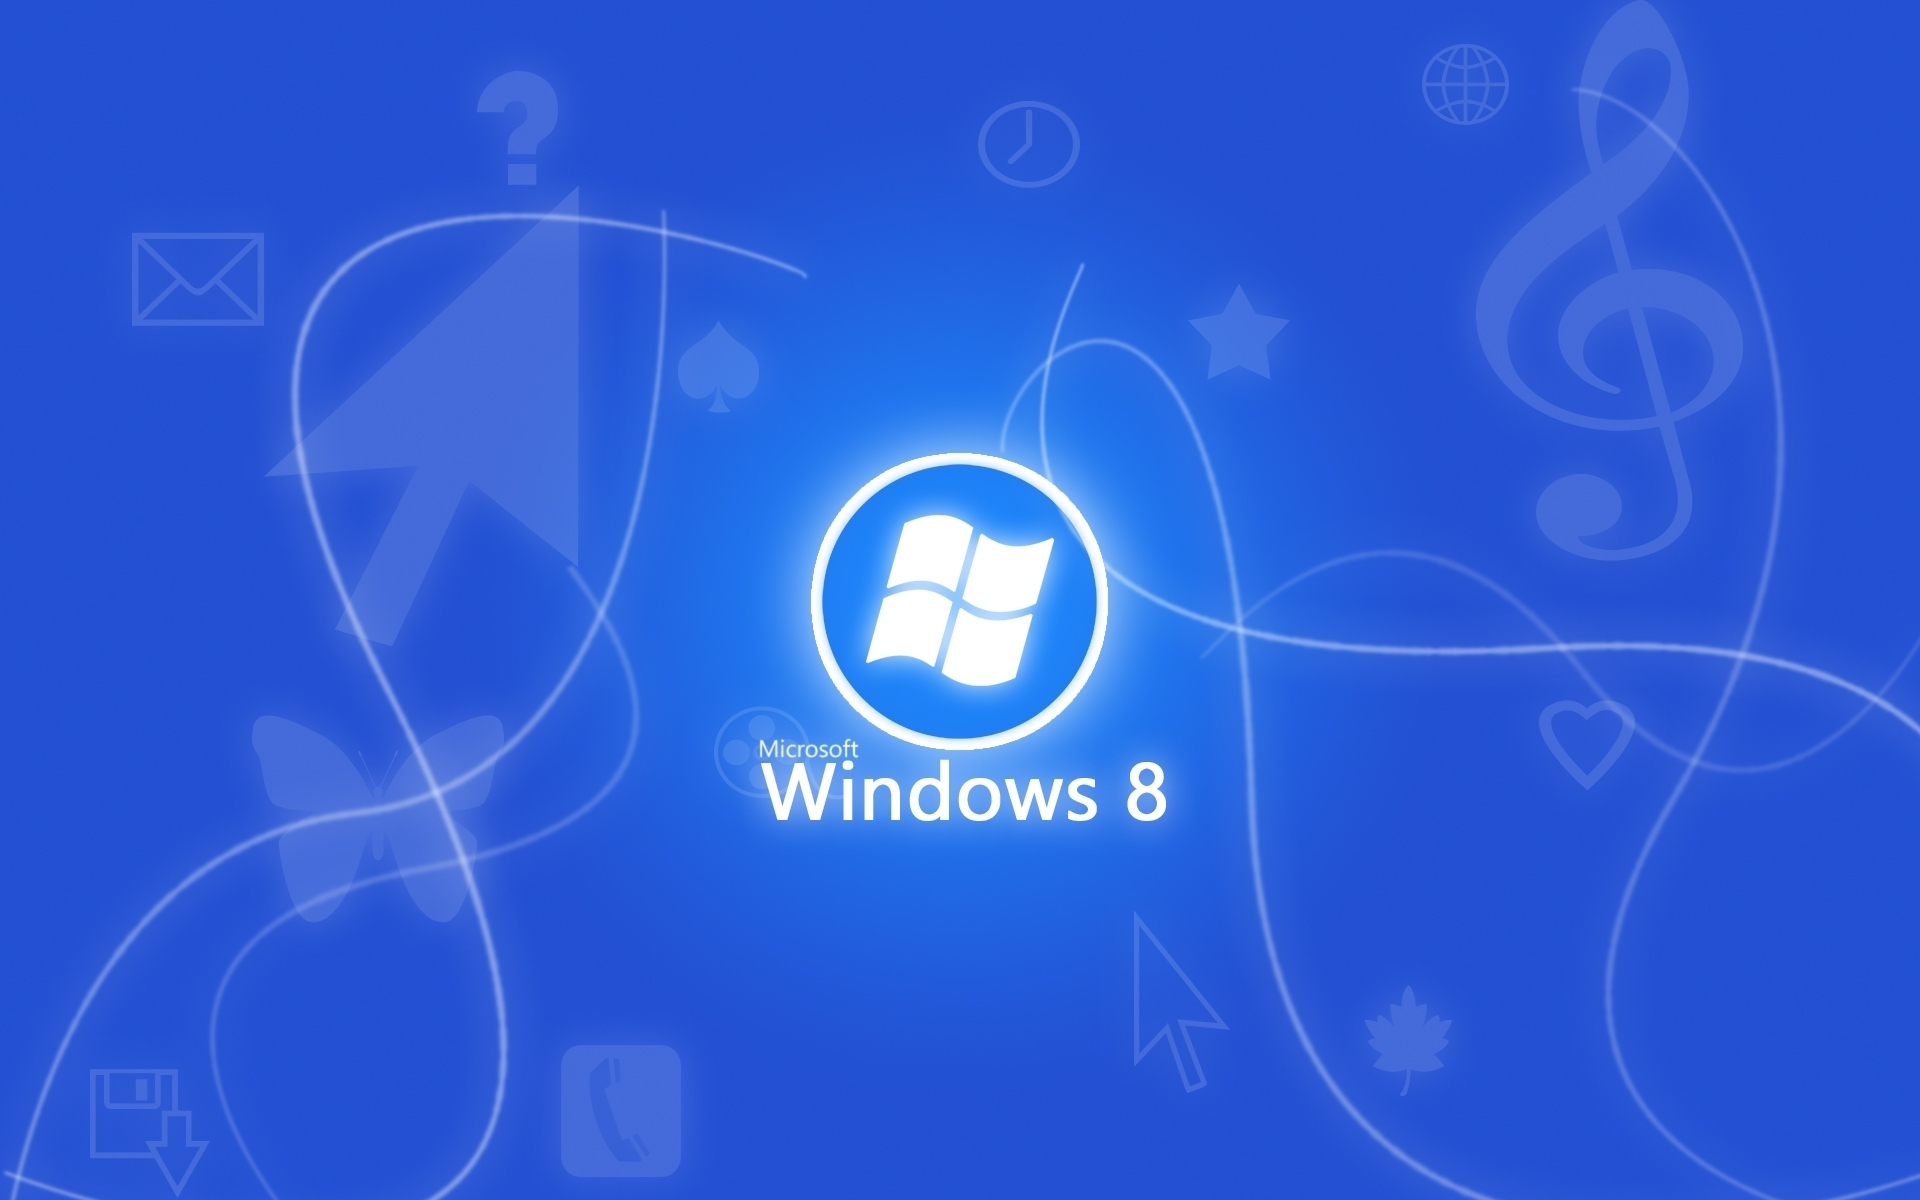 best of windows 8 wallpaper animated gif collection - anime wallpaper hd